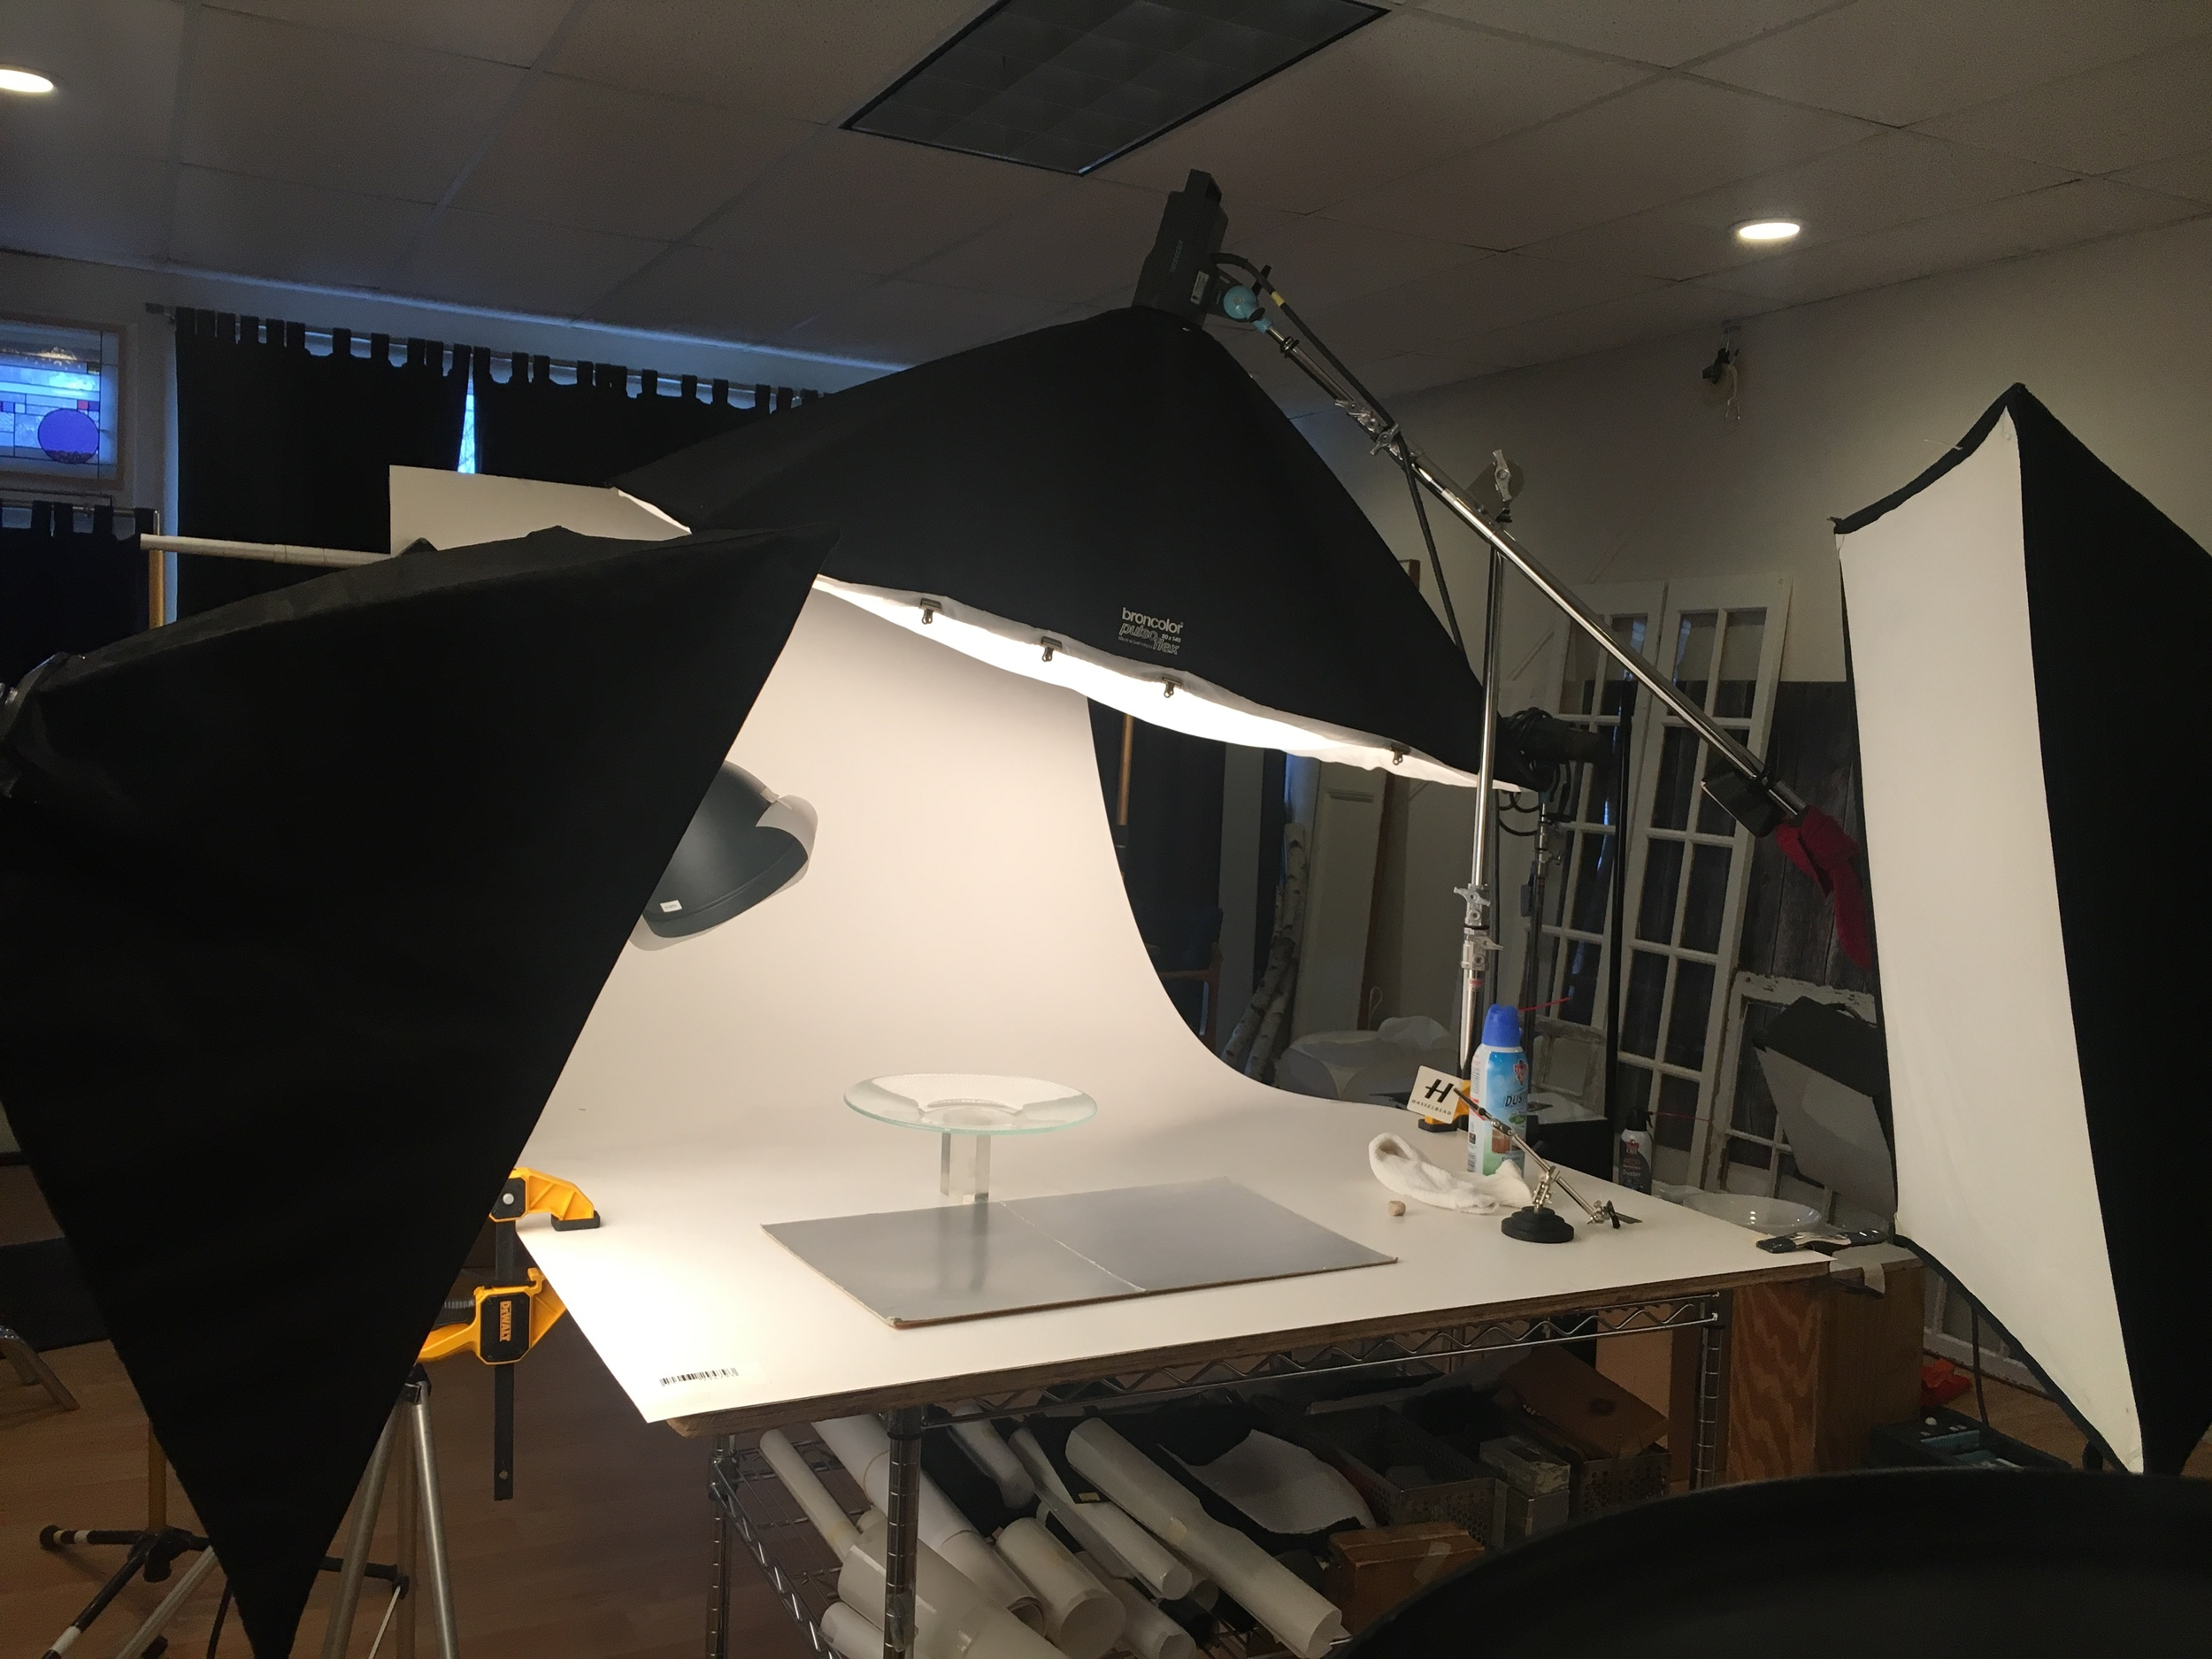 Typical professional studio tabletop photo shoot set-up. -